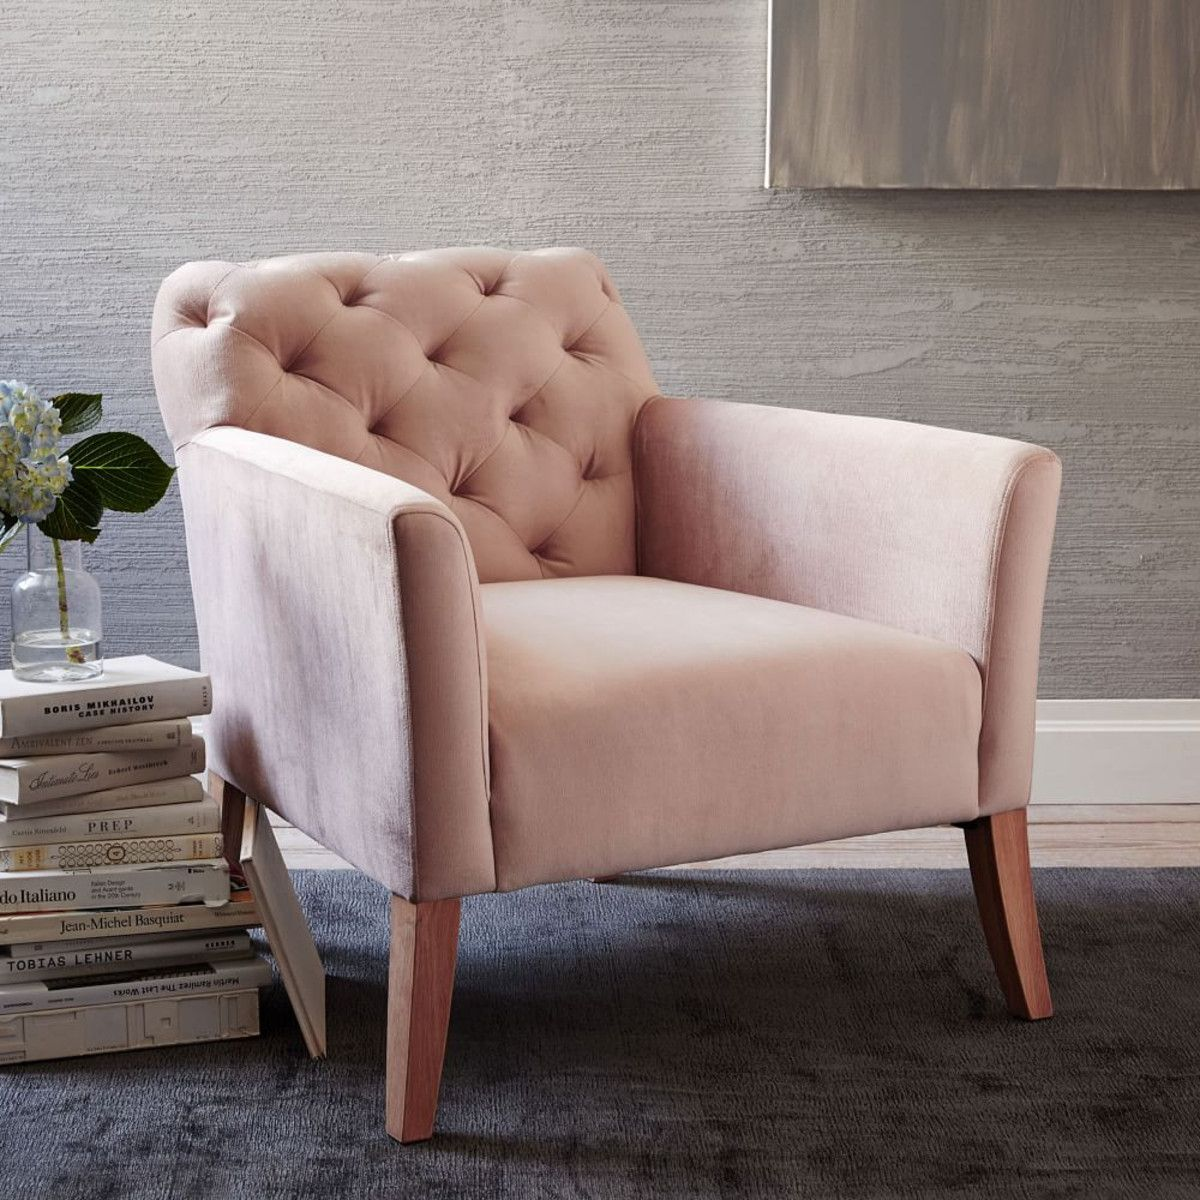 10 Best West Elm Living Room Chairs